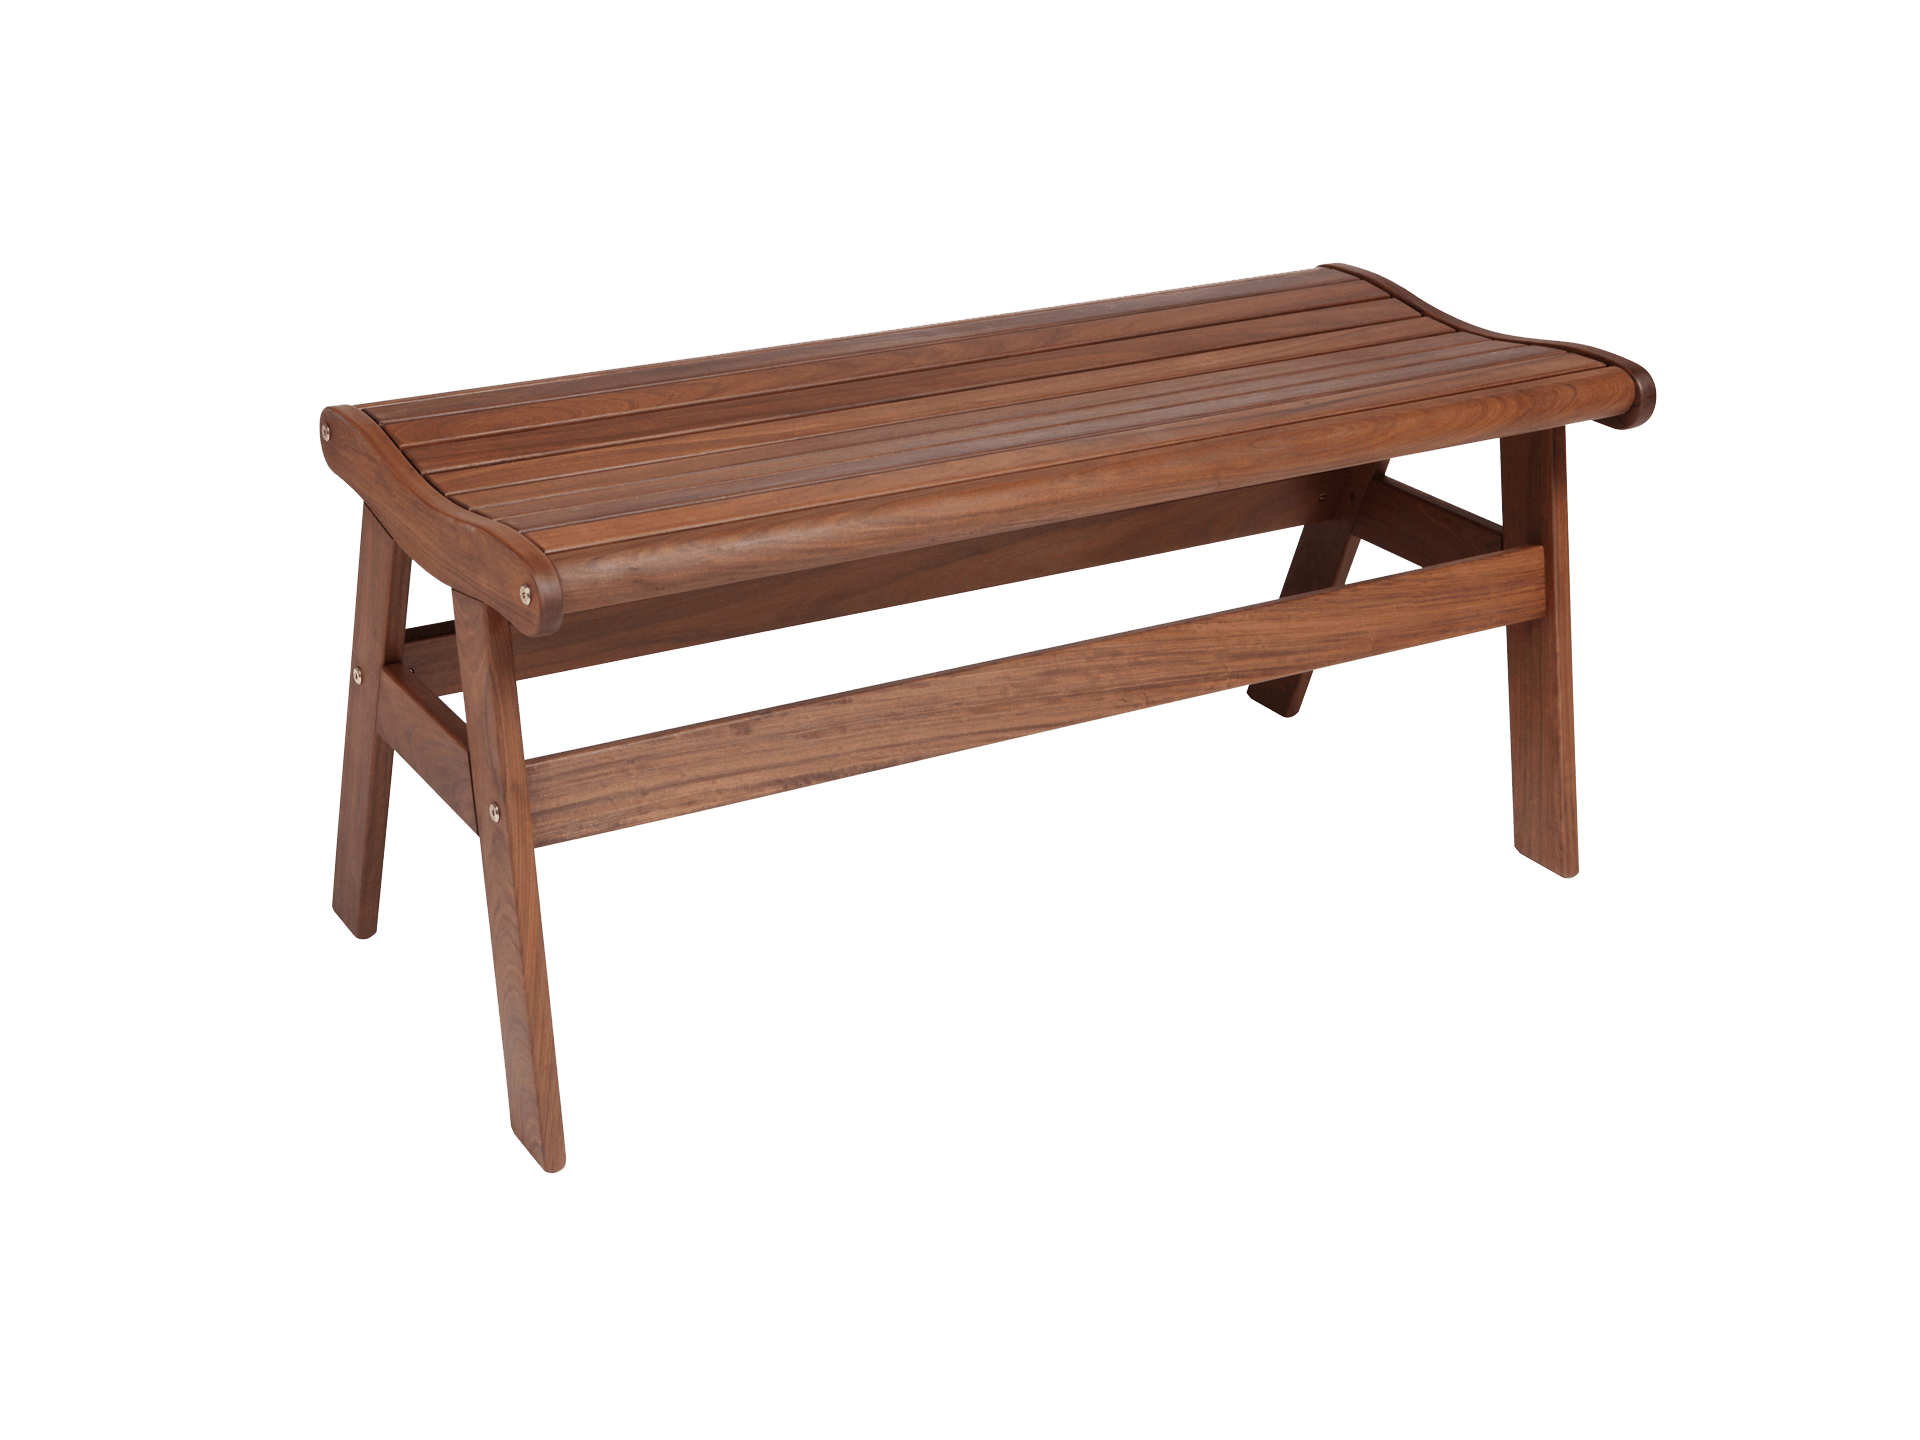 Amber Backless Bench Jensen Leisure Furniture